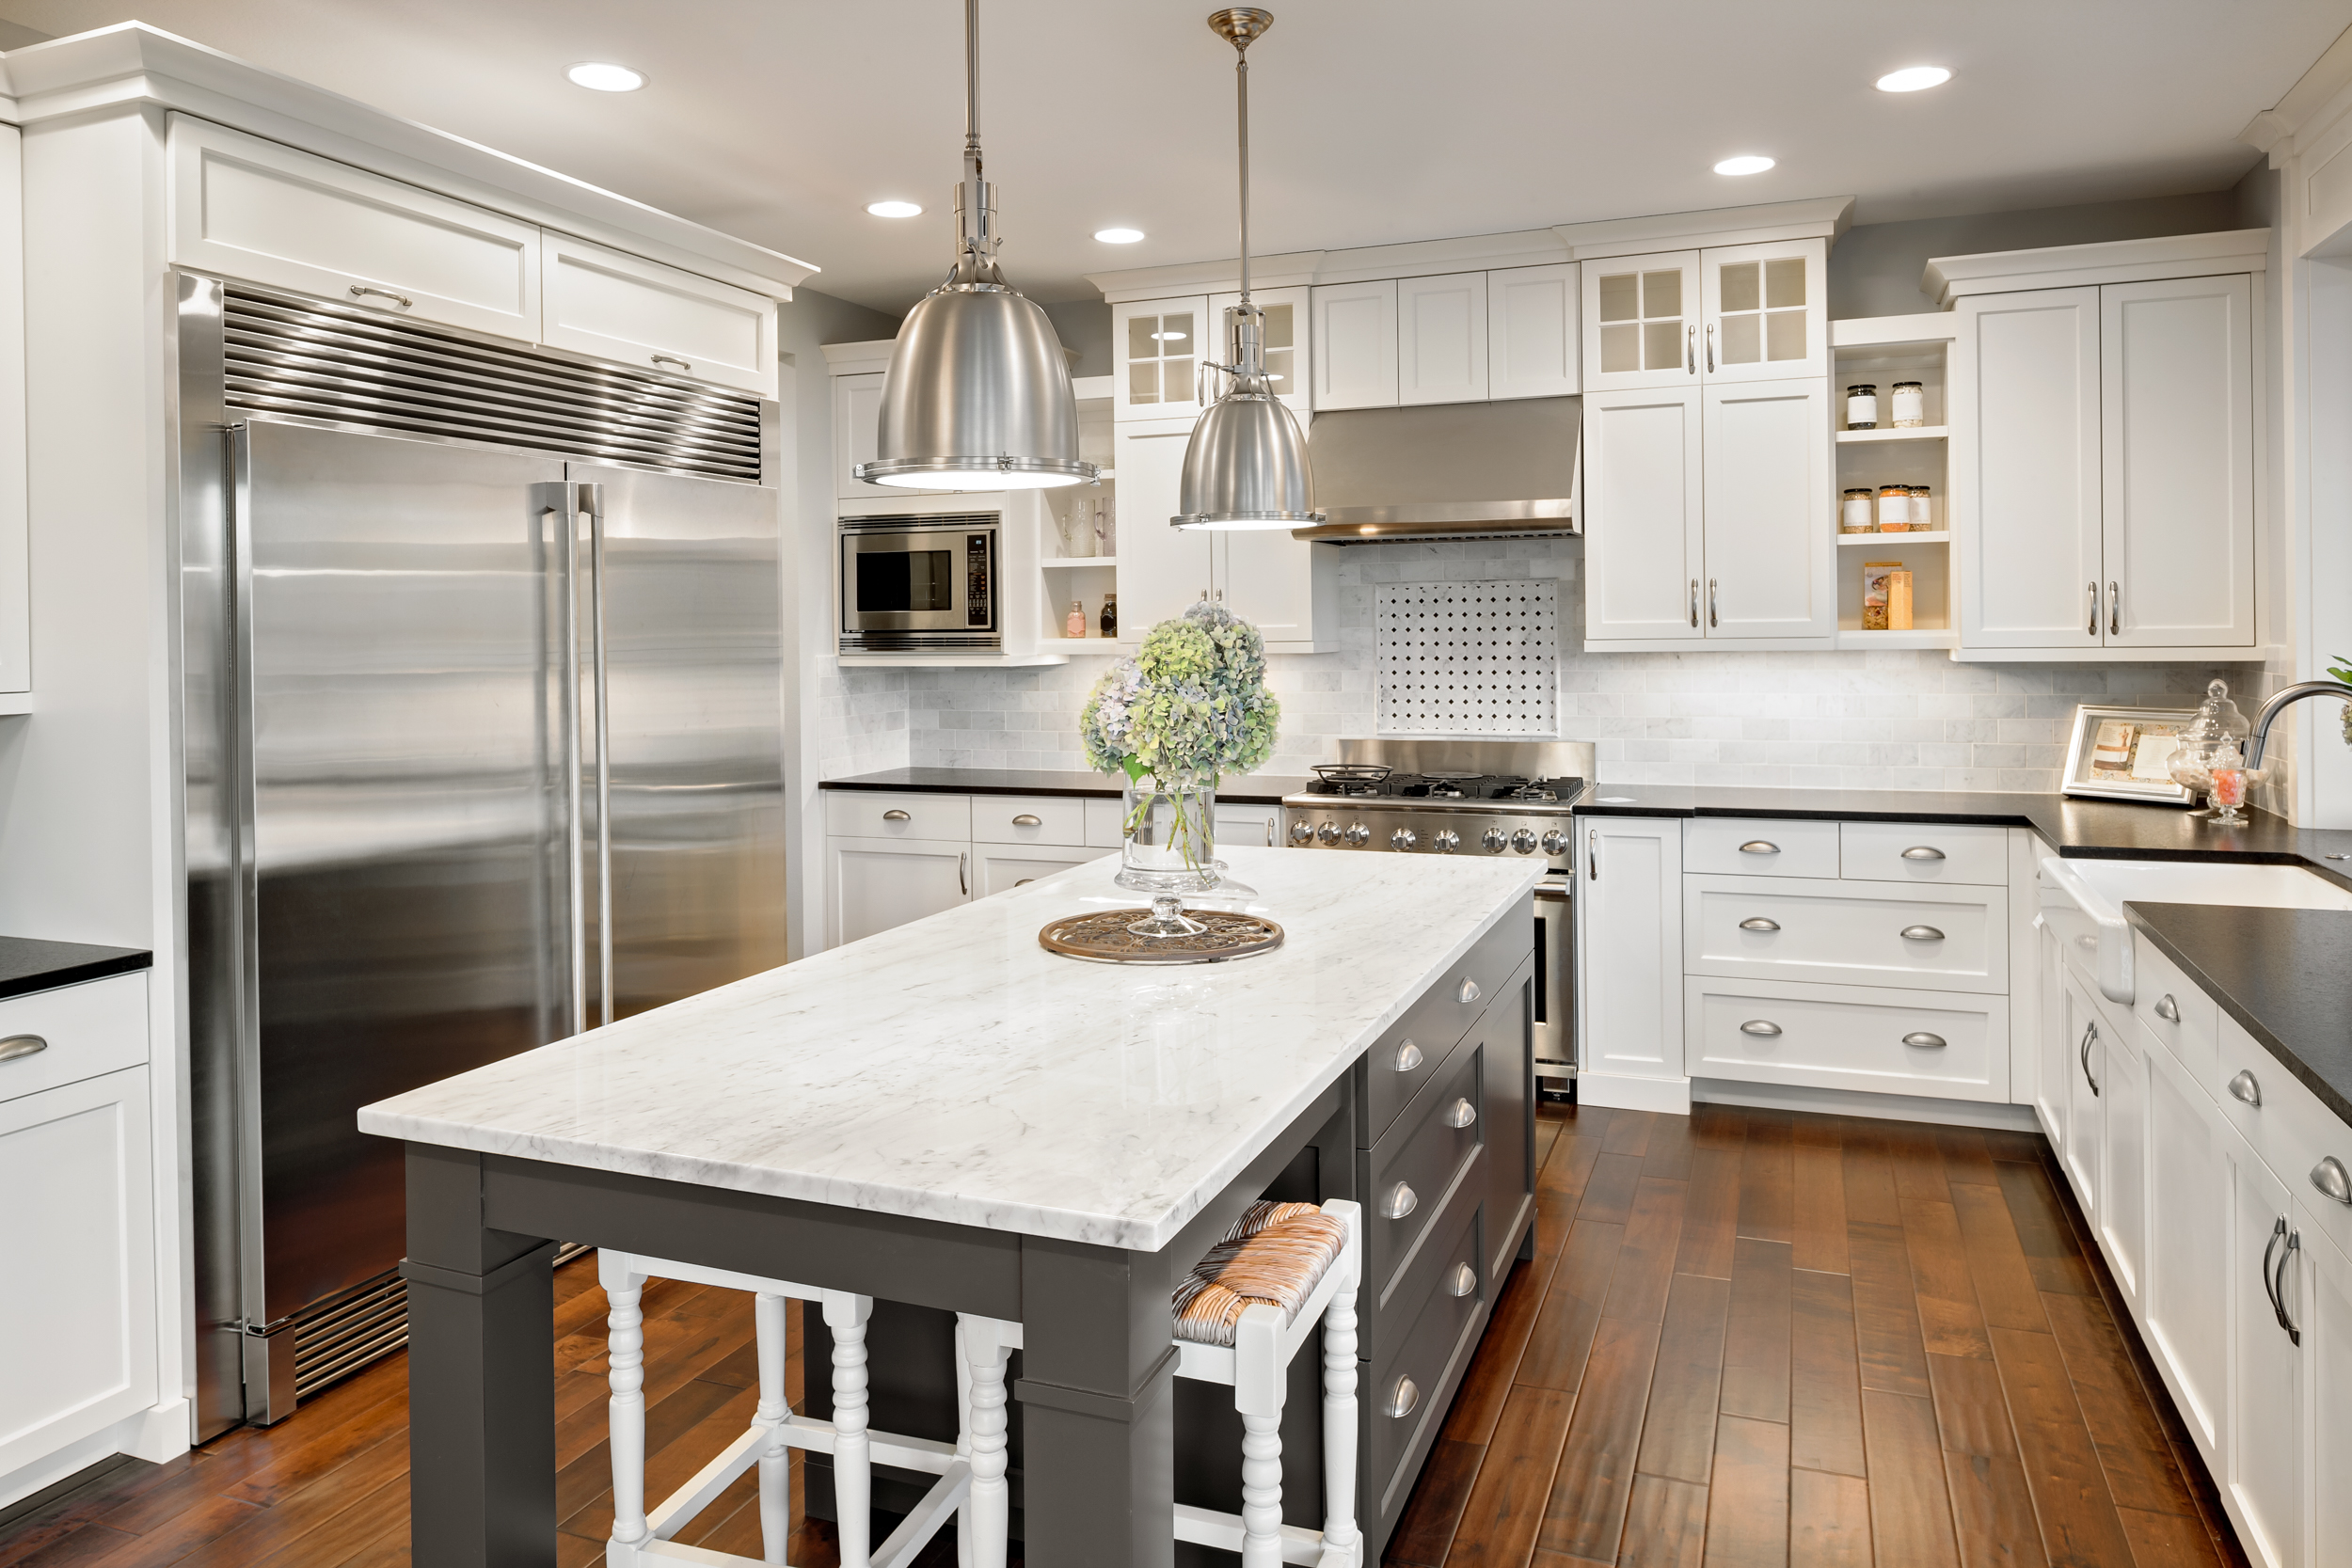 Refacing & Custom Cabinets - Cabinet Refacing offers a quick, and convenient cabinet restoration process available in all of the latest styles and trends.